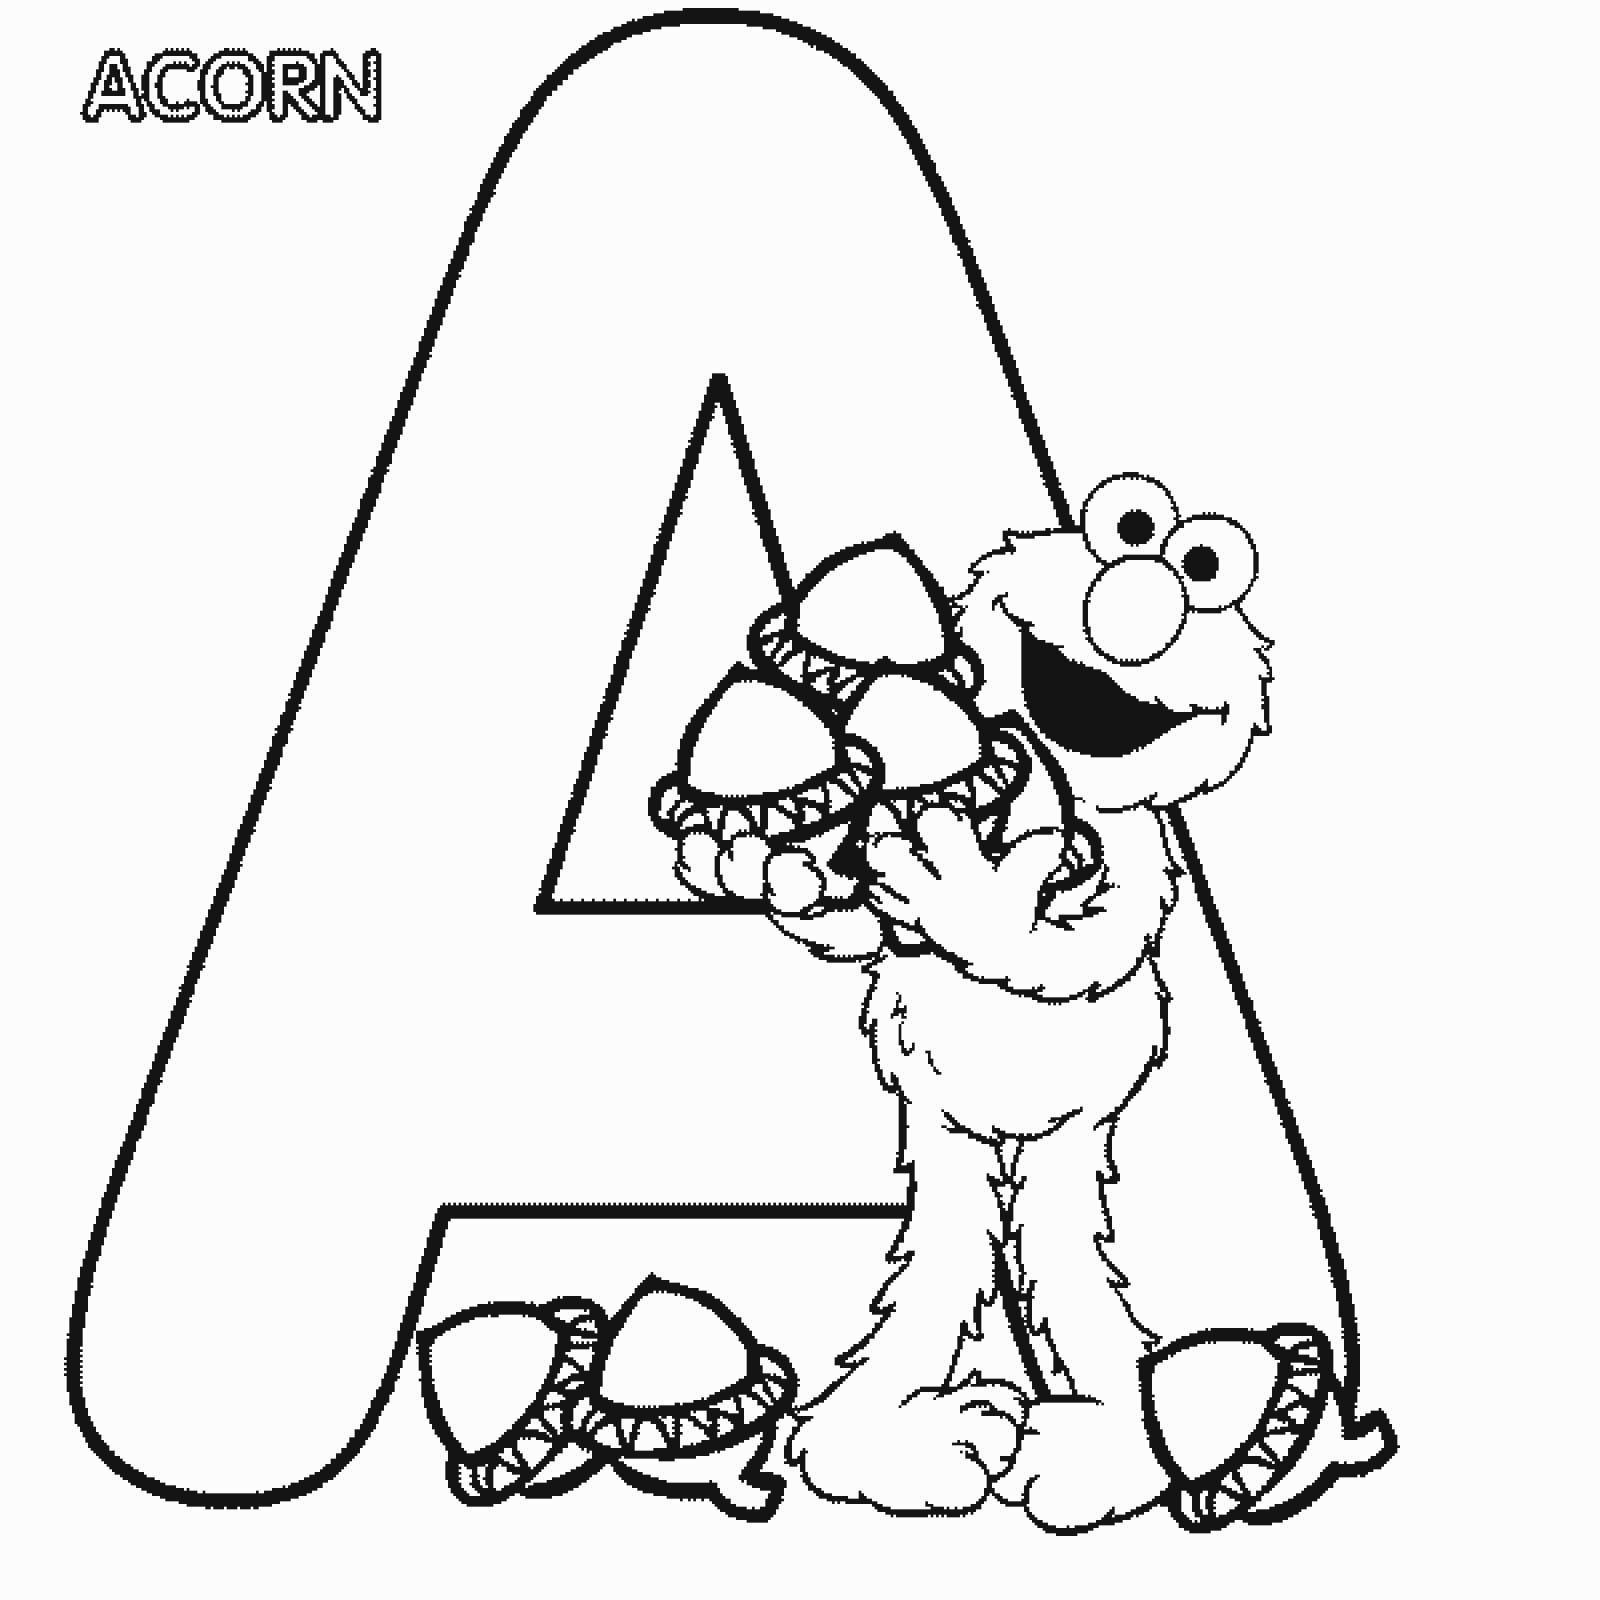 Elmo Alphabet Coloring Pages Coloring Home Free Printable Colouring Pages For